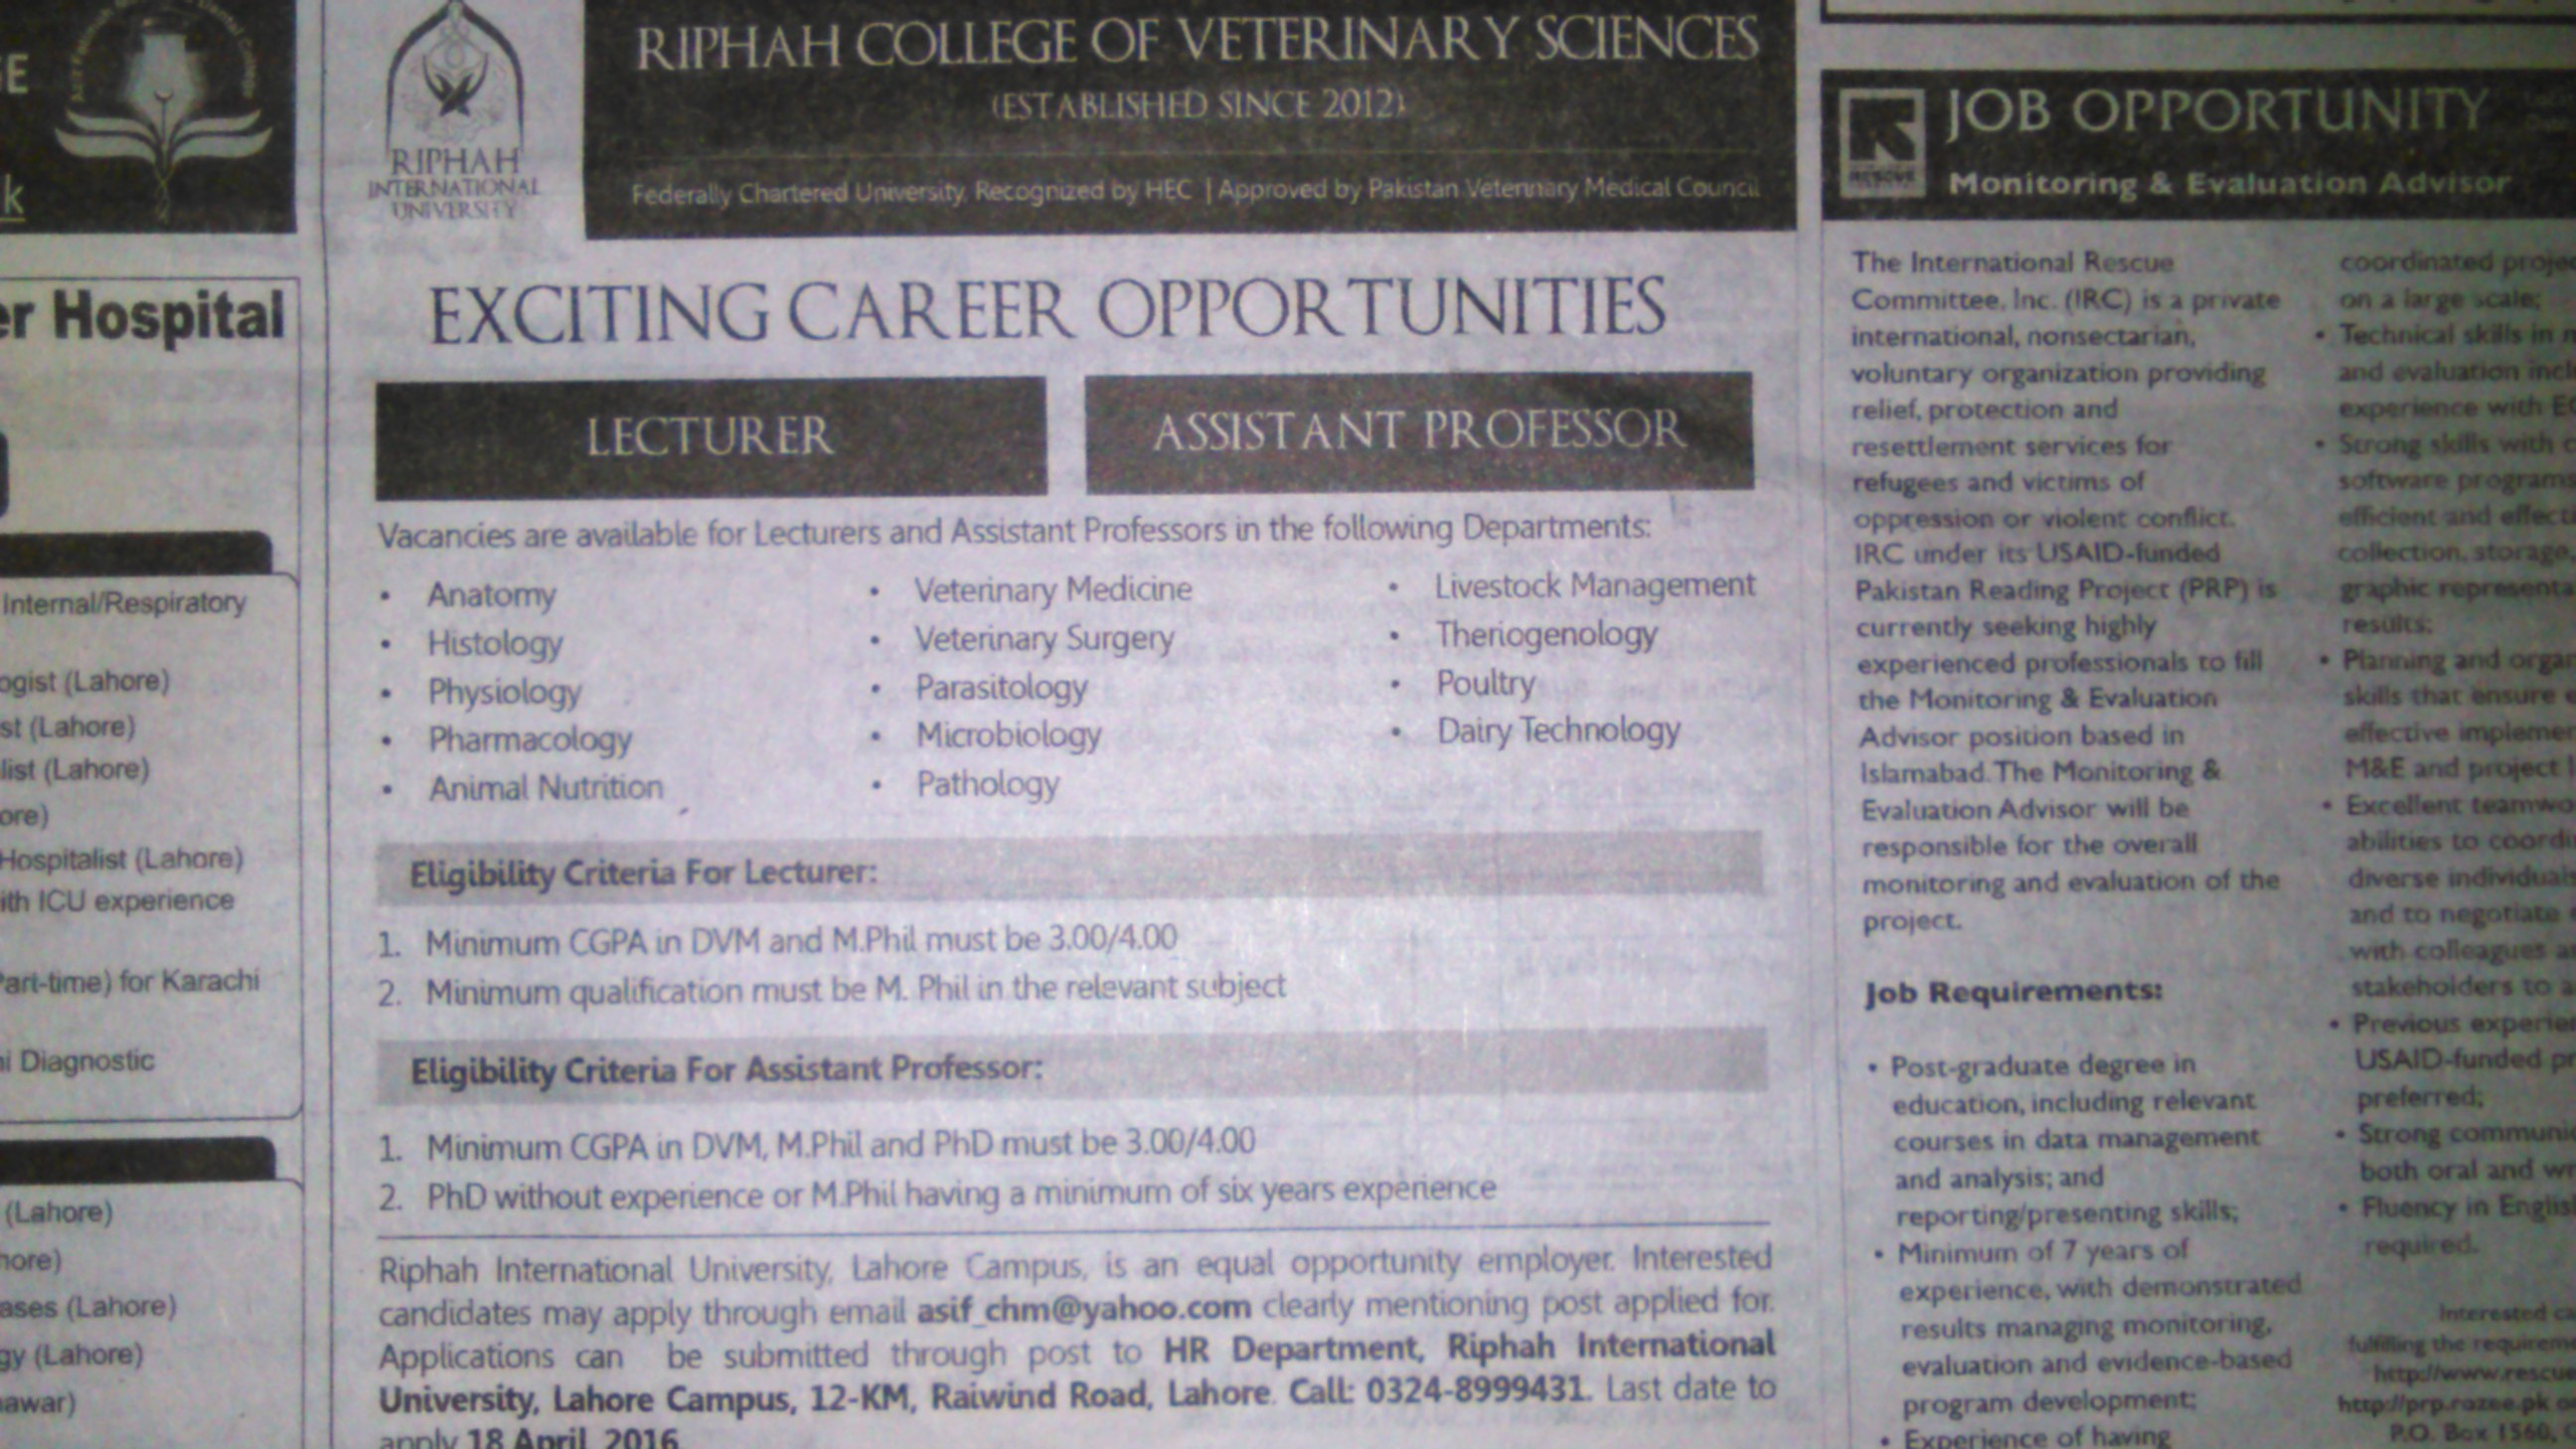 Ripha College of Veterinary Sciences Jobs 2016